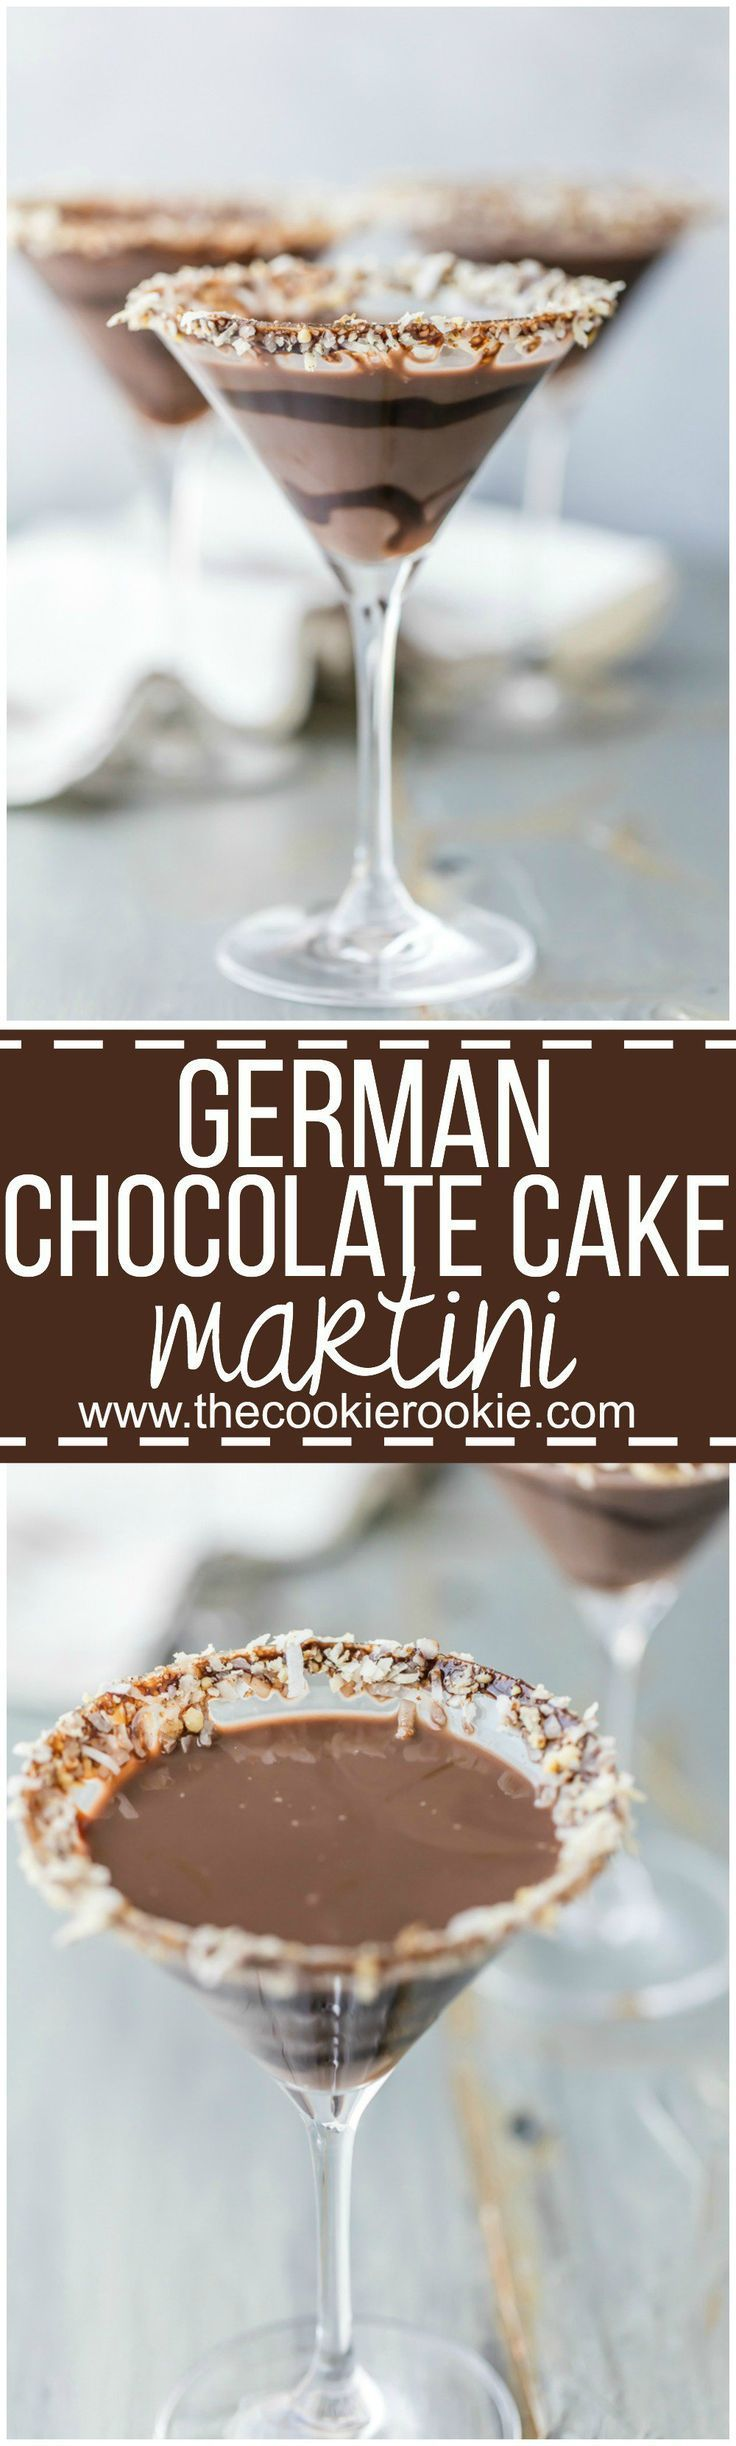 25 Best Ideas About Martini Cake On Pinterest